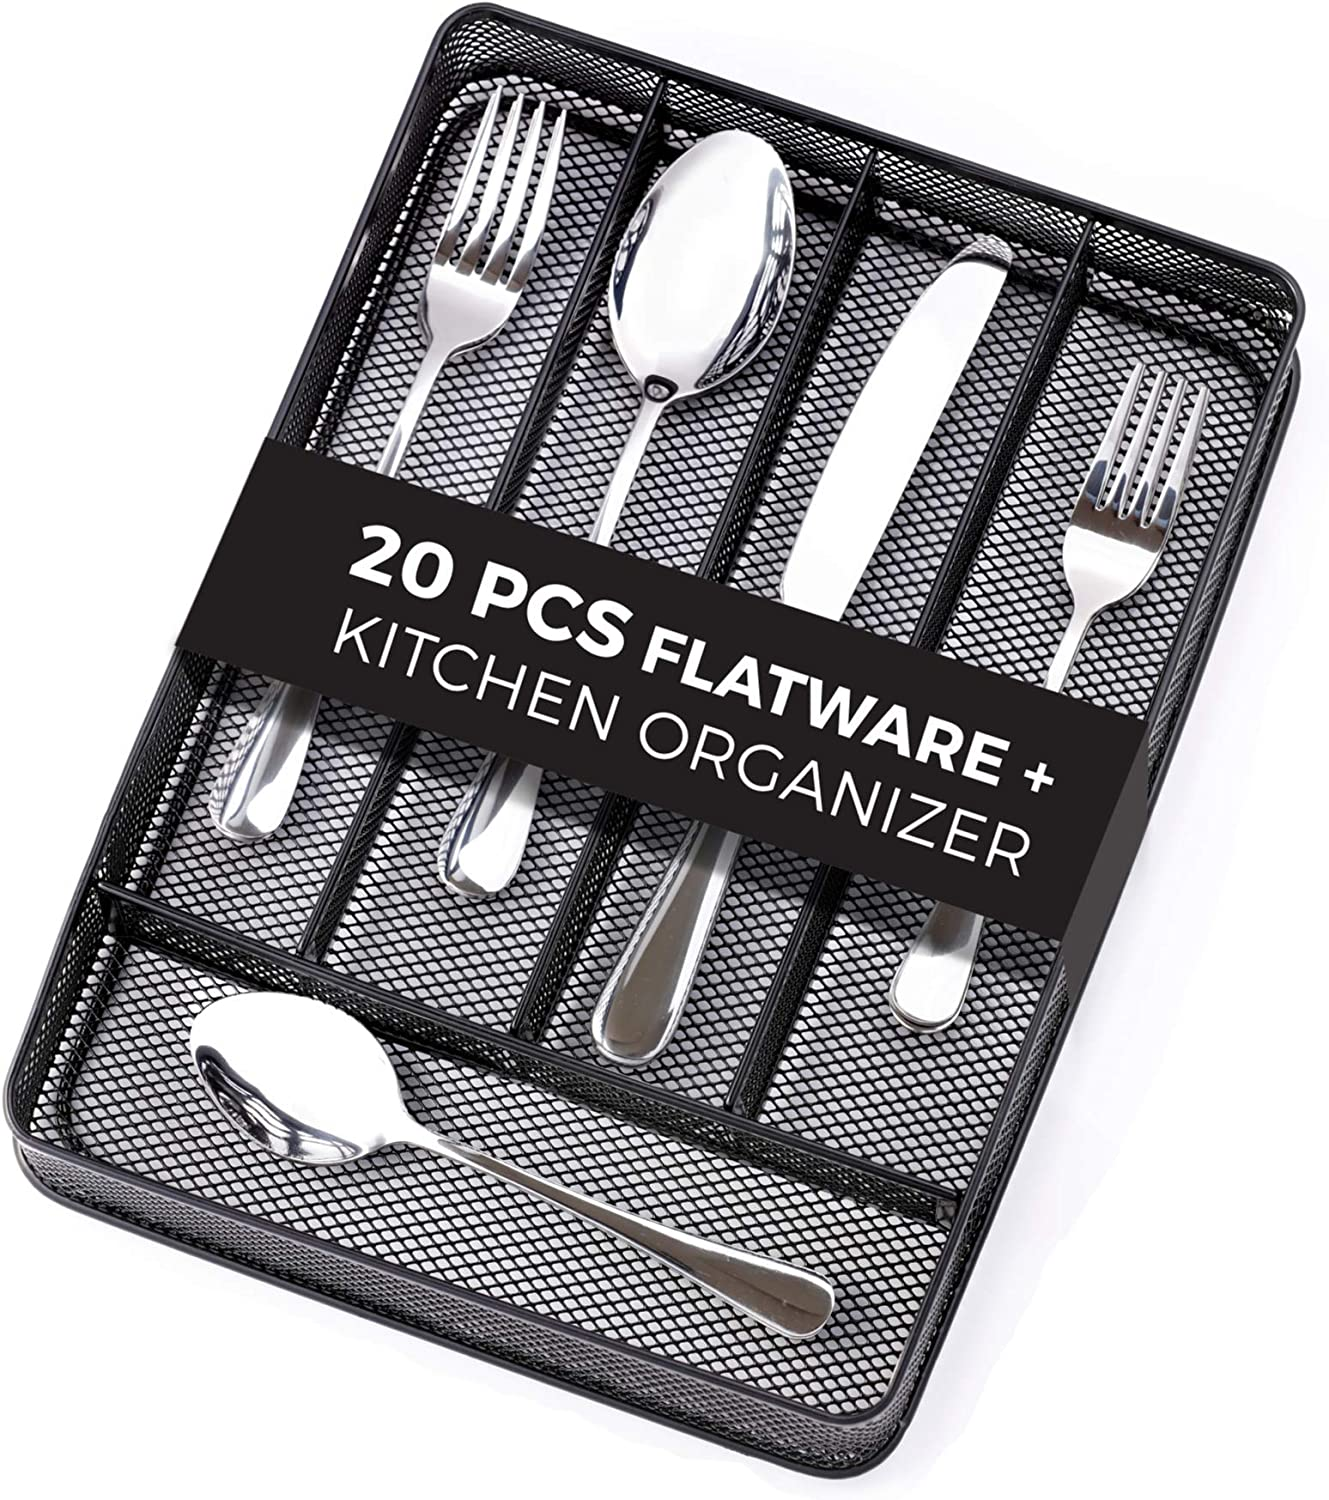 Tenmor 20 Piece Silverware Set, Stainless Steel Flatware Set Mirror Polished, Dishwasher Safe, Utensils Service for 4, Include Knife/Fork/Spoon and Mesh Cutlery Holder/Kitchen Drawer Organizer Trays